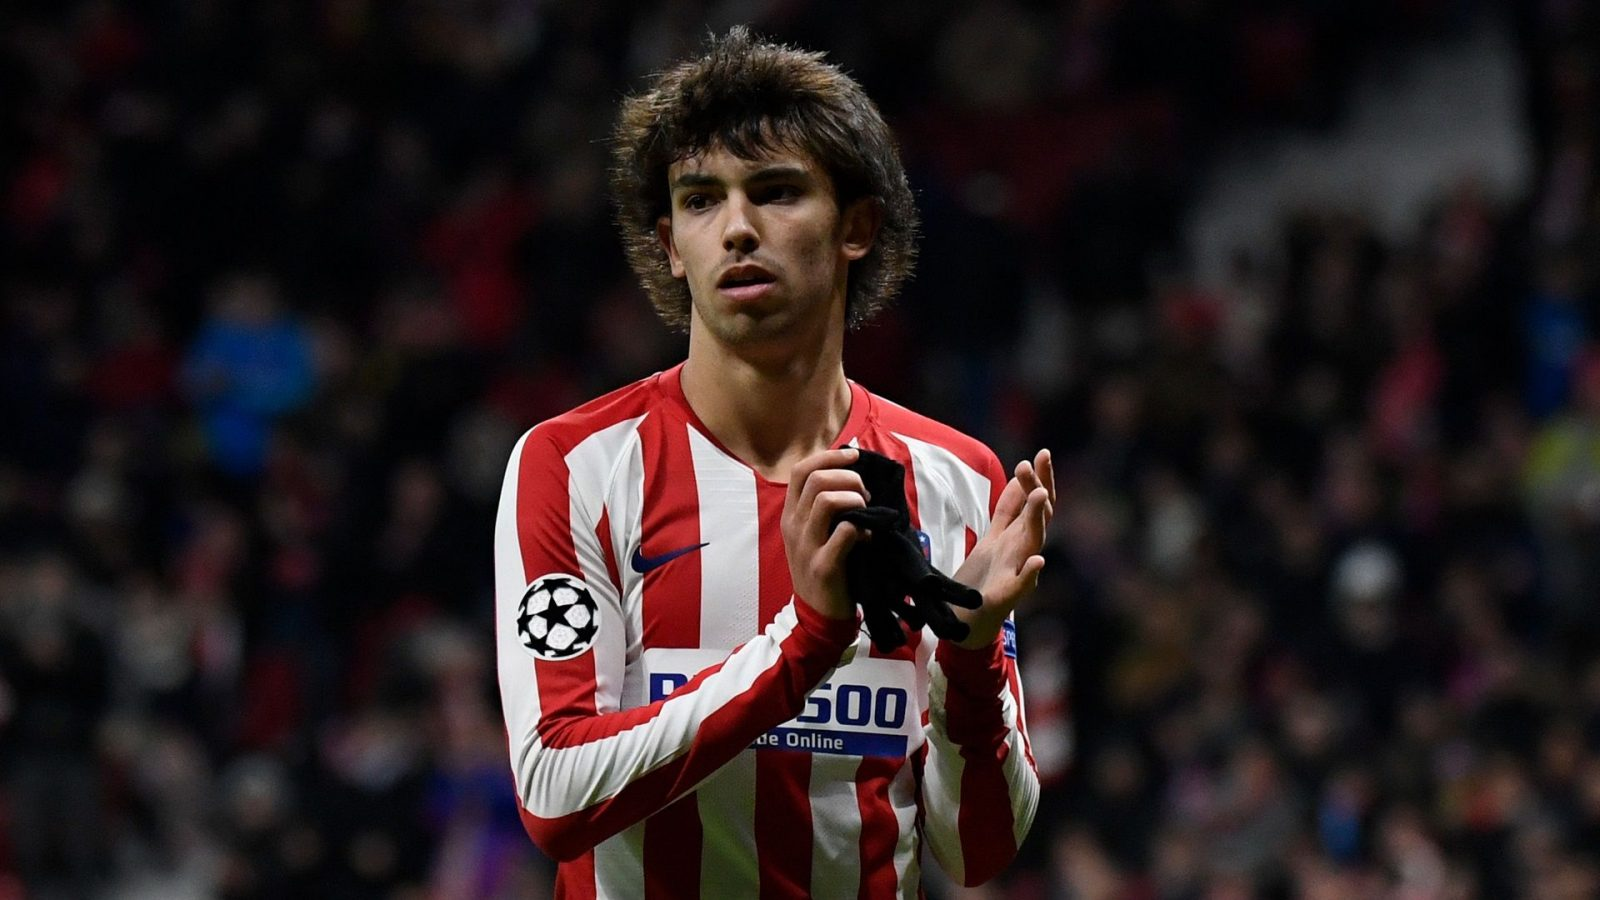 Joao Felix: Is the Atletico Madrid forward now justifying the fee to help test Real Madrid & Barcelona?